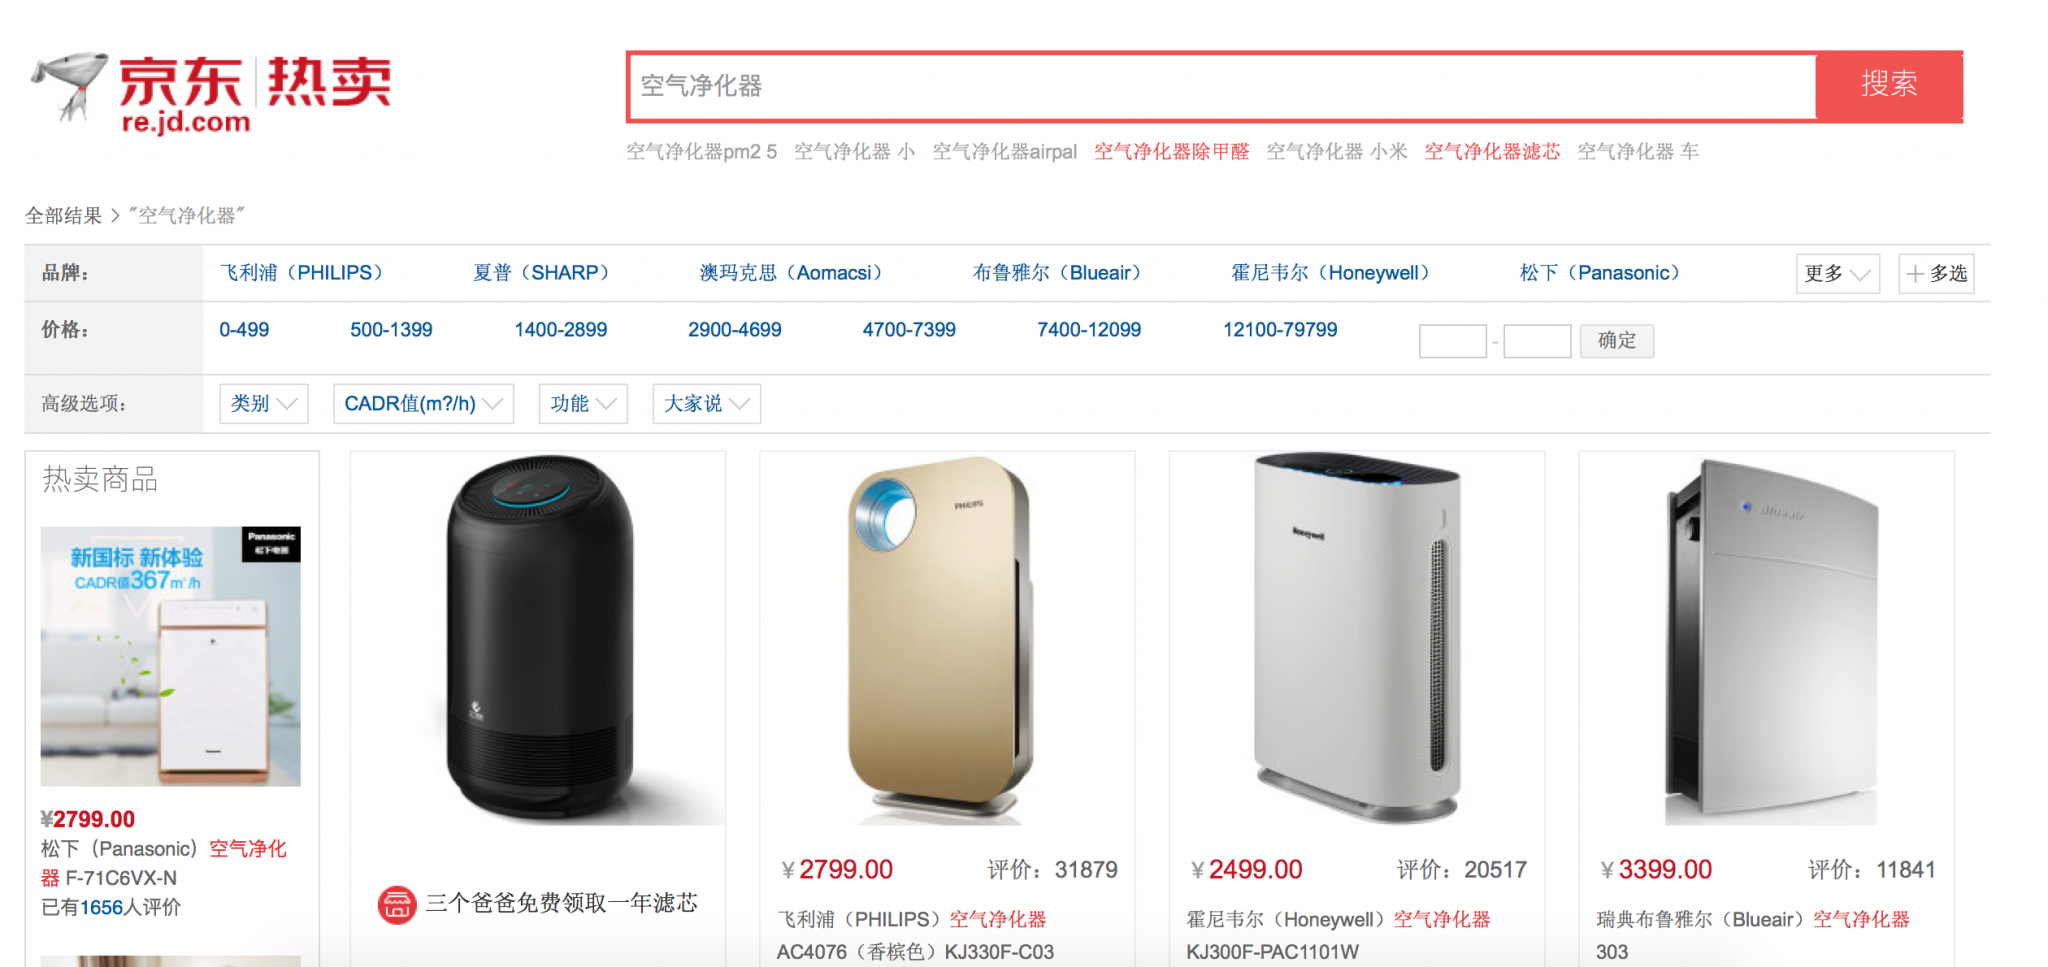 airpurifier jd